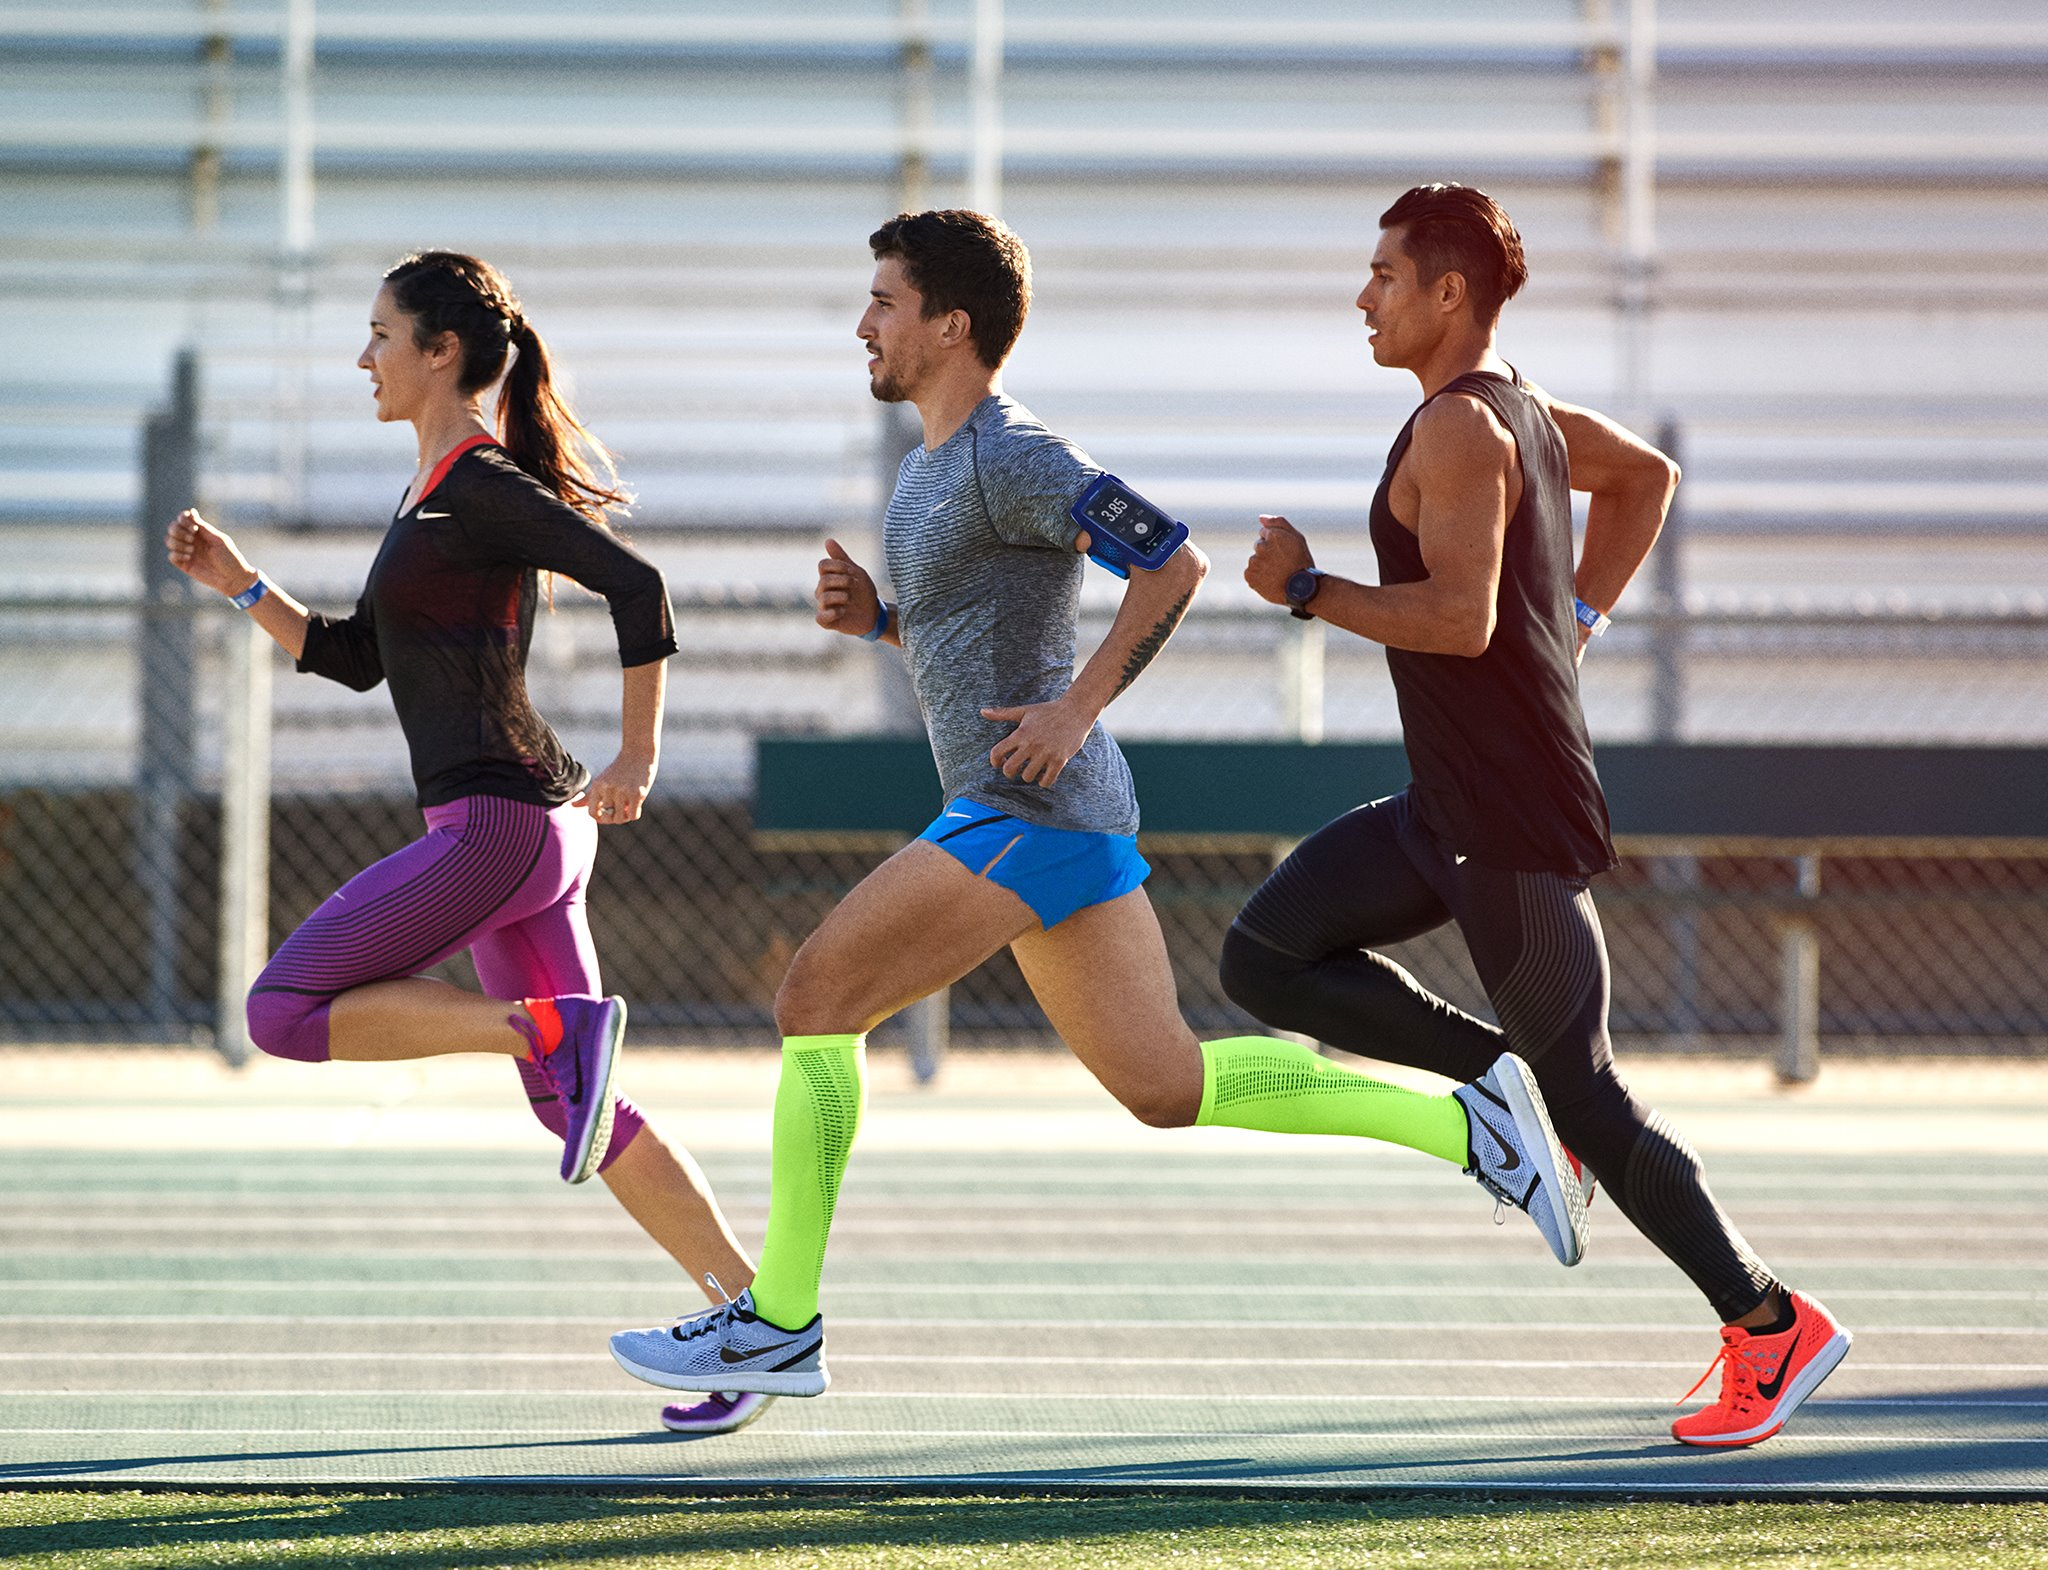 THE BENEFITS OF RUNNING GROUPS